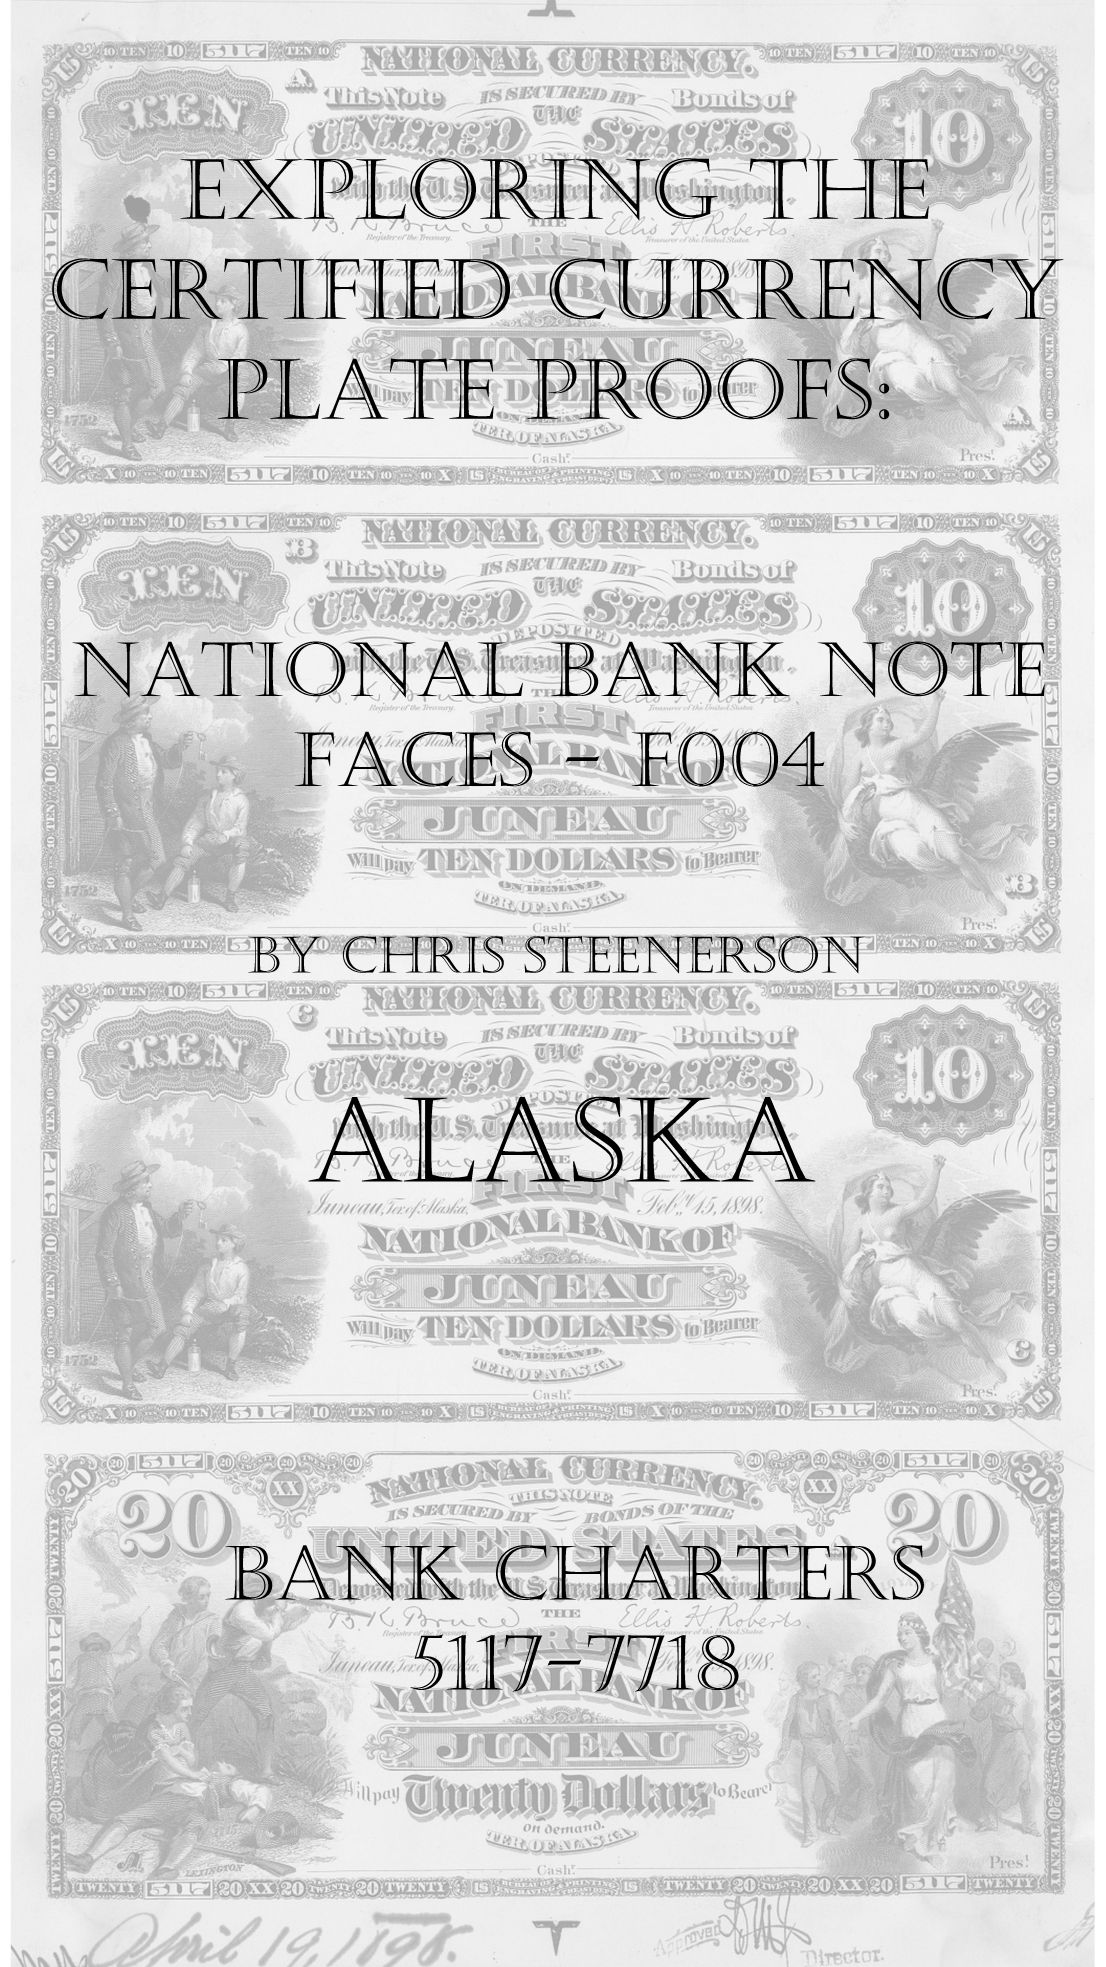 Alaska National Bank Note Currency Proofs